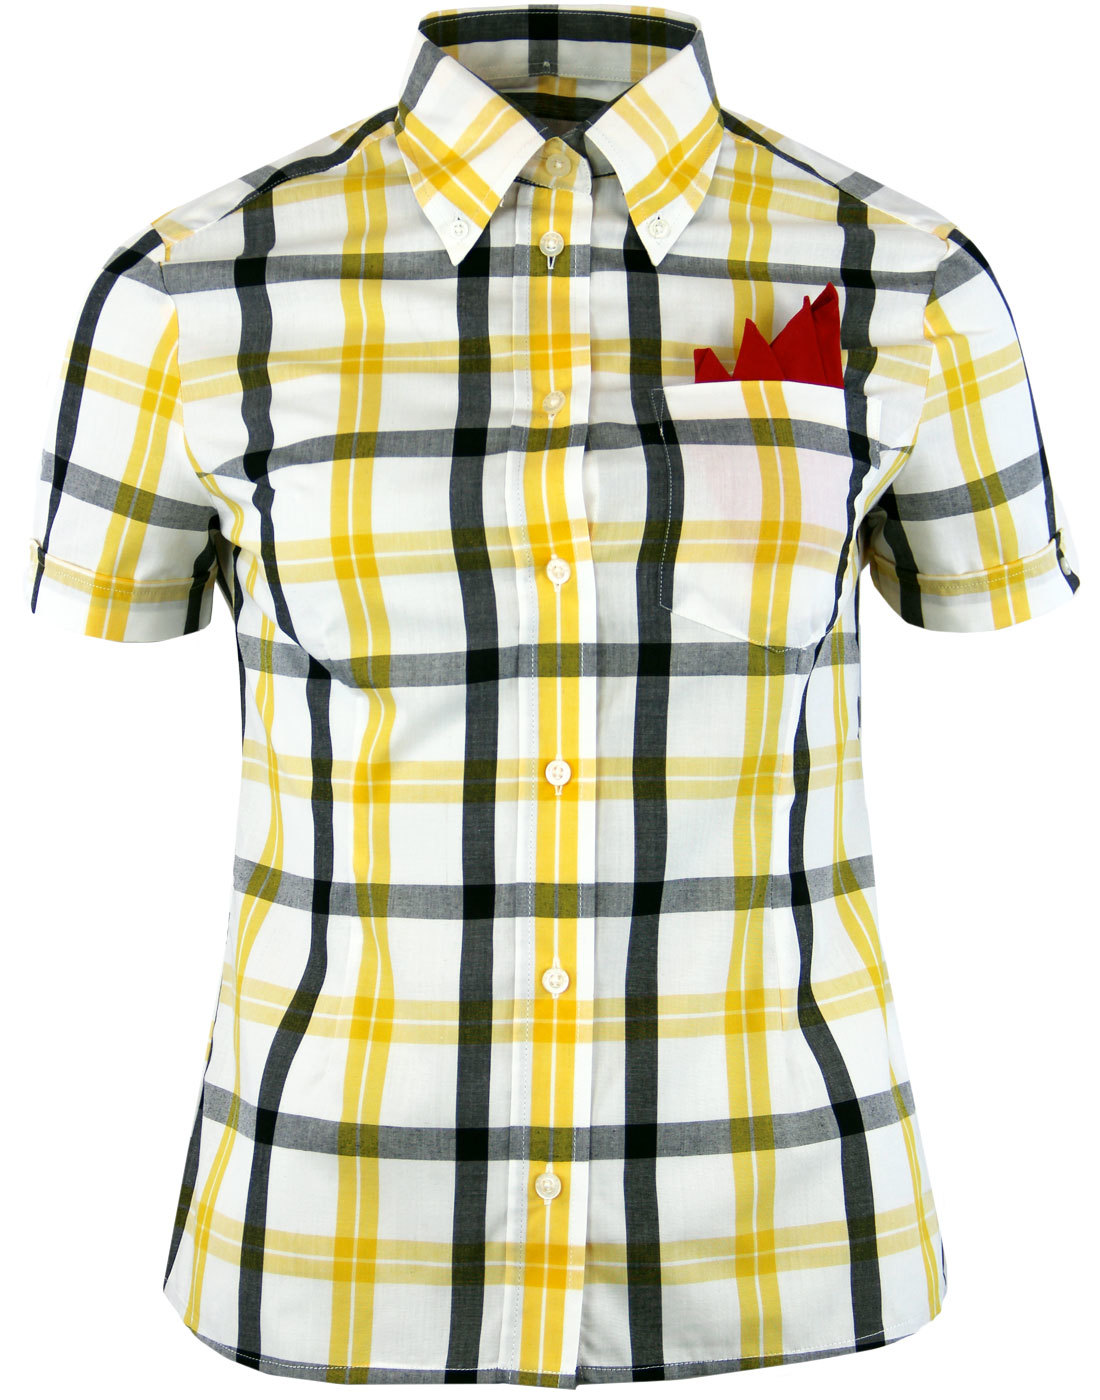 BRUTUS TRIMFIT Womens Mod Windowpane Check Shirt